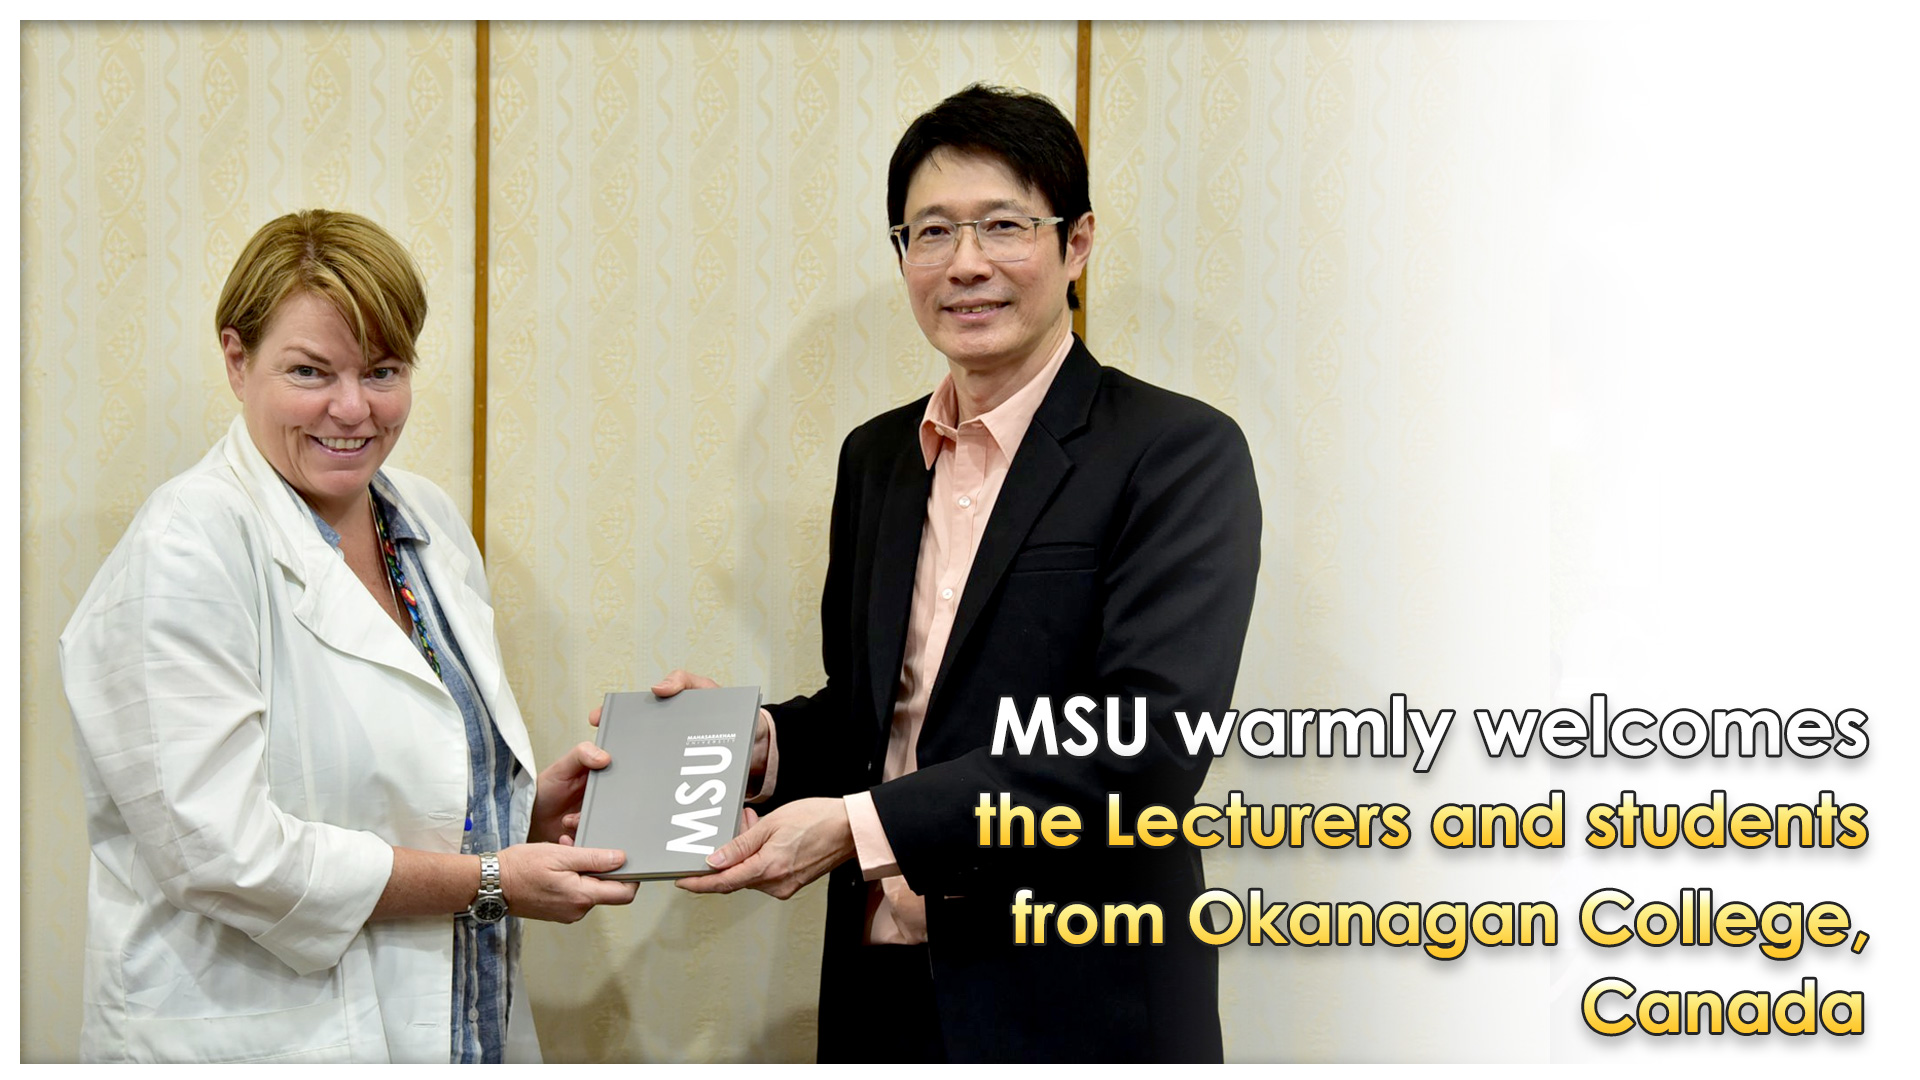 MSU warmly welcomes the Lecturers and students from Okanagan College, Canada